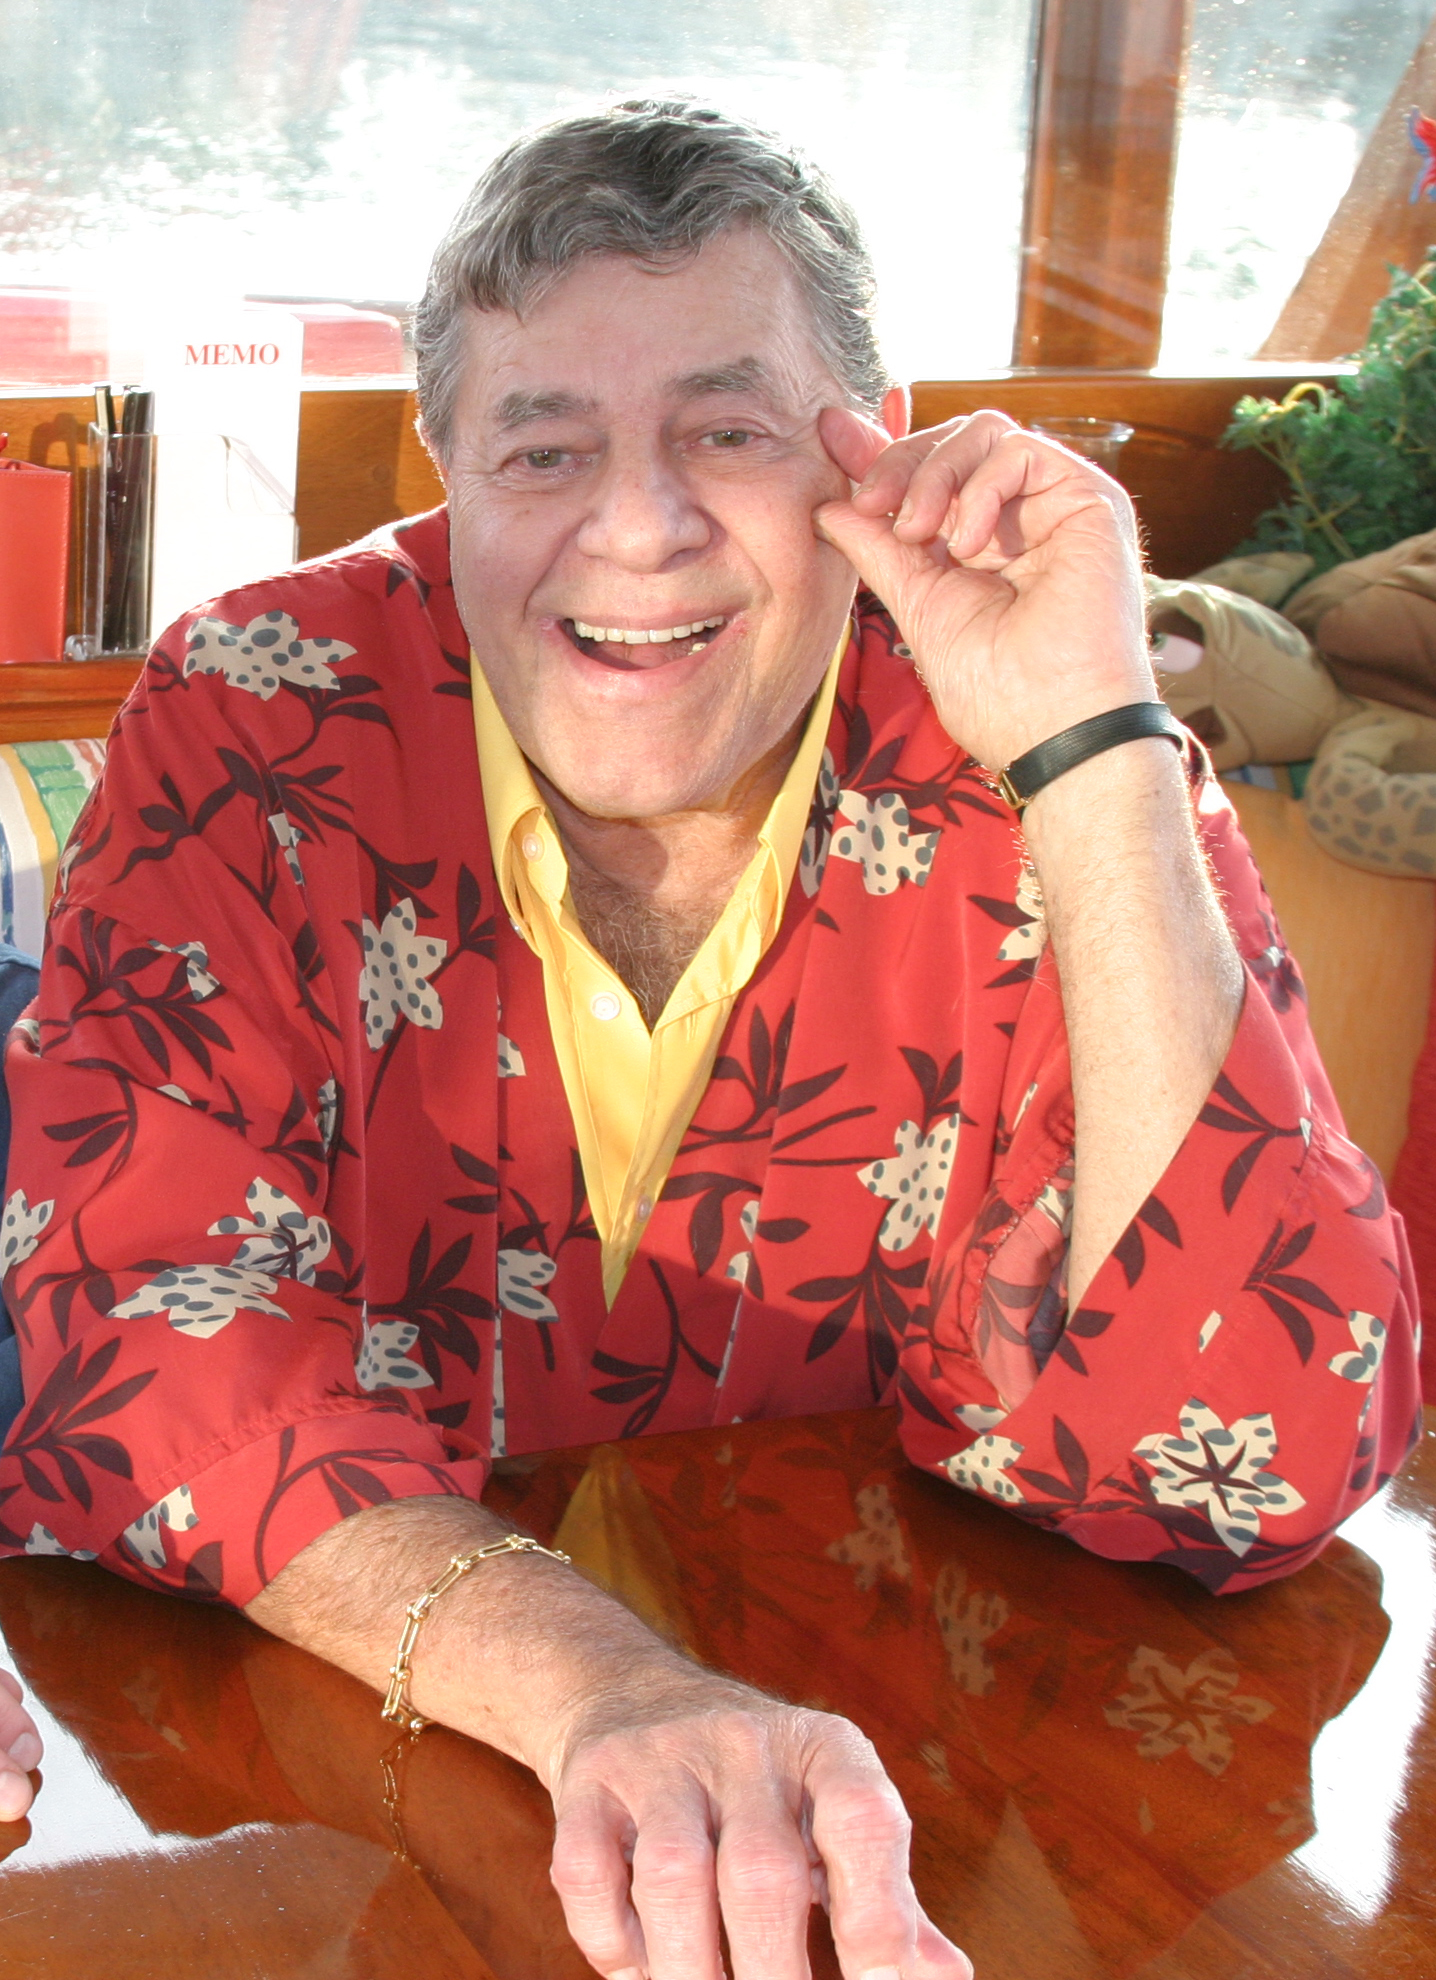 Jerry Lewis: The Most Painfully, Awkward 7 Minute Interview Ever!